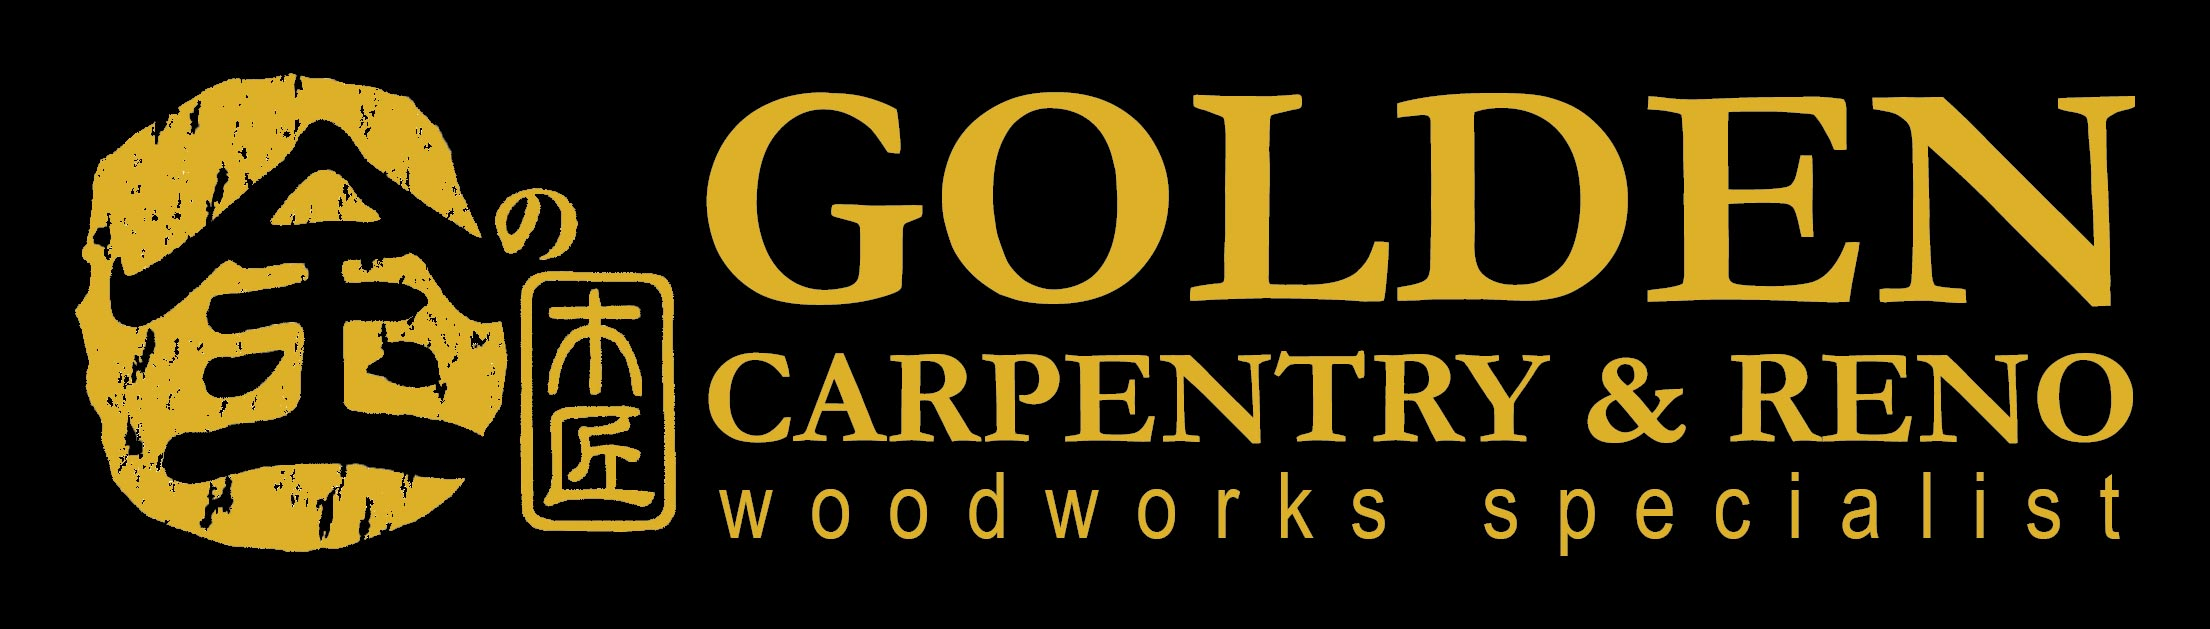 Golden Carpentry & Reno  Renof  Find A Professional. One Word Lettering. Clothing Nike Banners. Banner Lettering. Airport Dubai Signs Of Stroke. Flower Market Signs. Grad Party Signs Of Stroke. Fashion Blog Banners. Treatise Signs